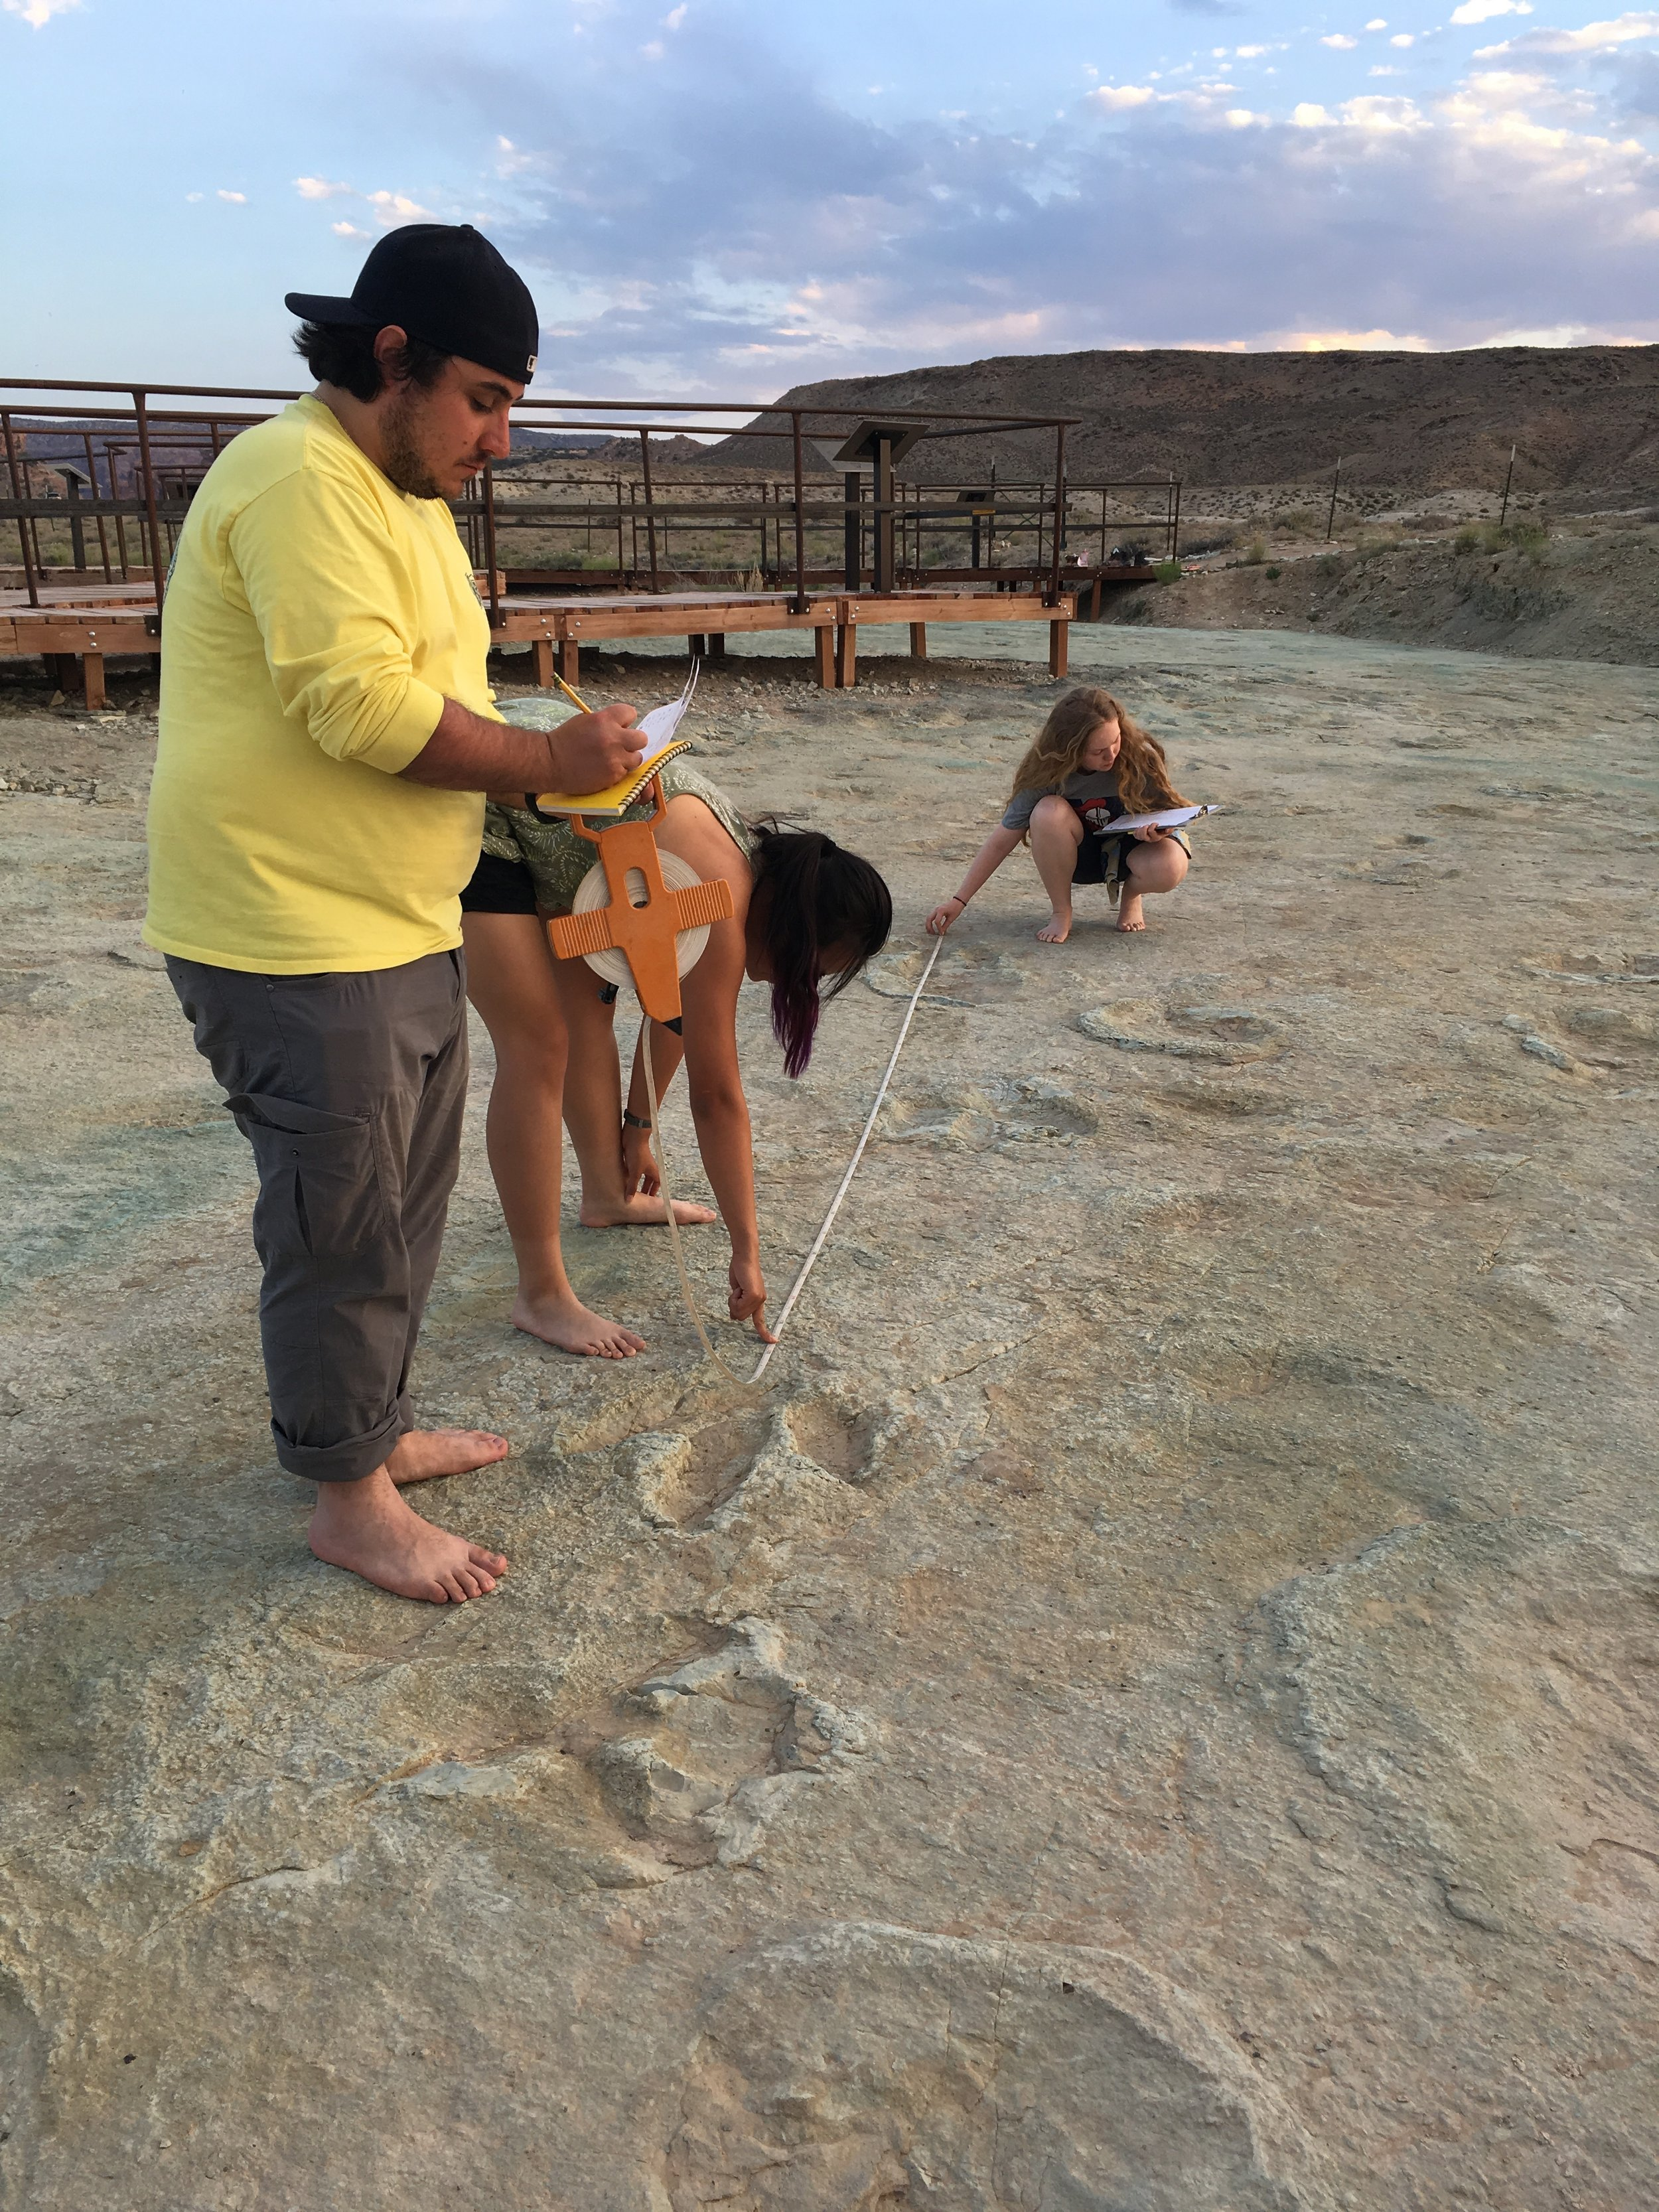 estimating dinosaur speed from footprints during summer field course